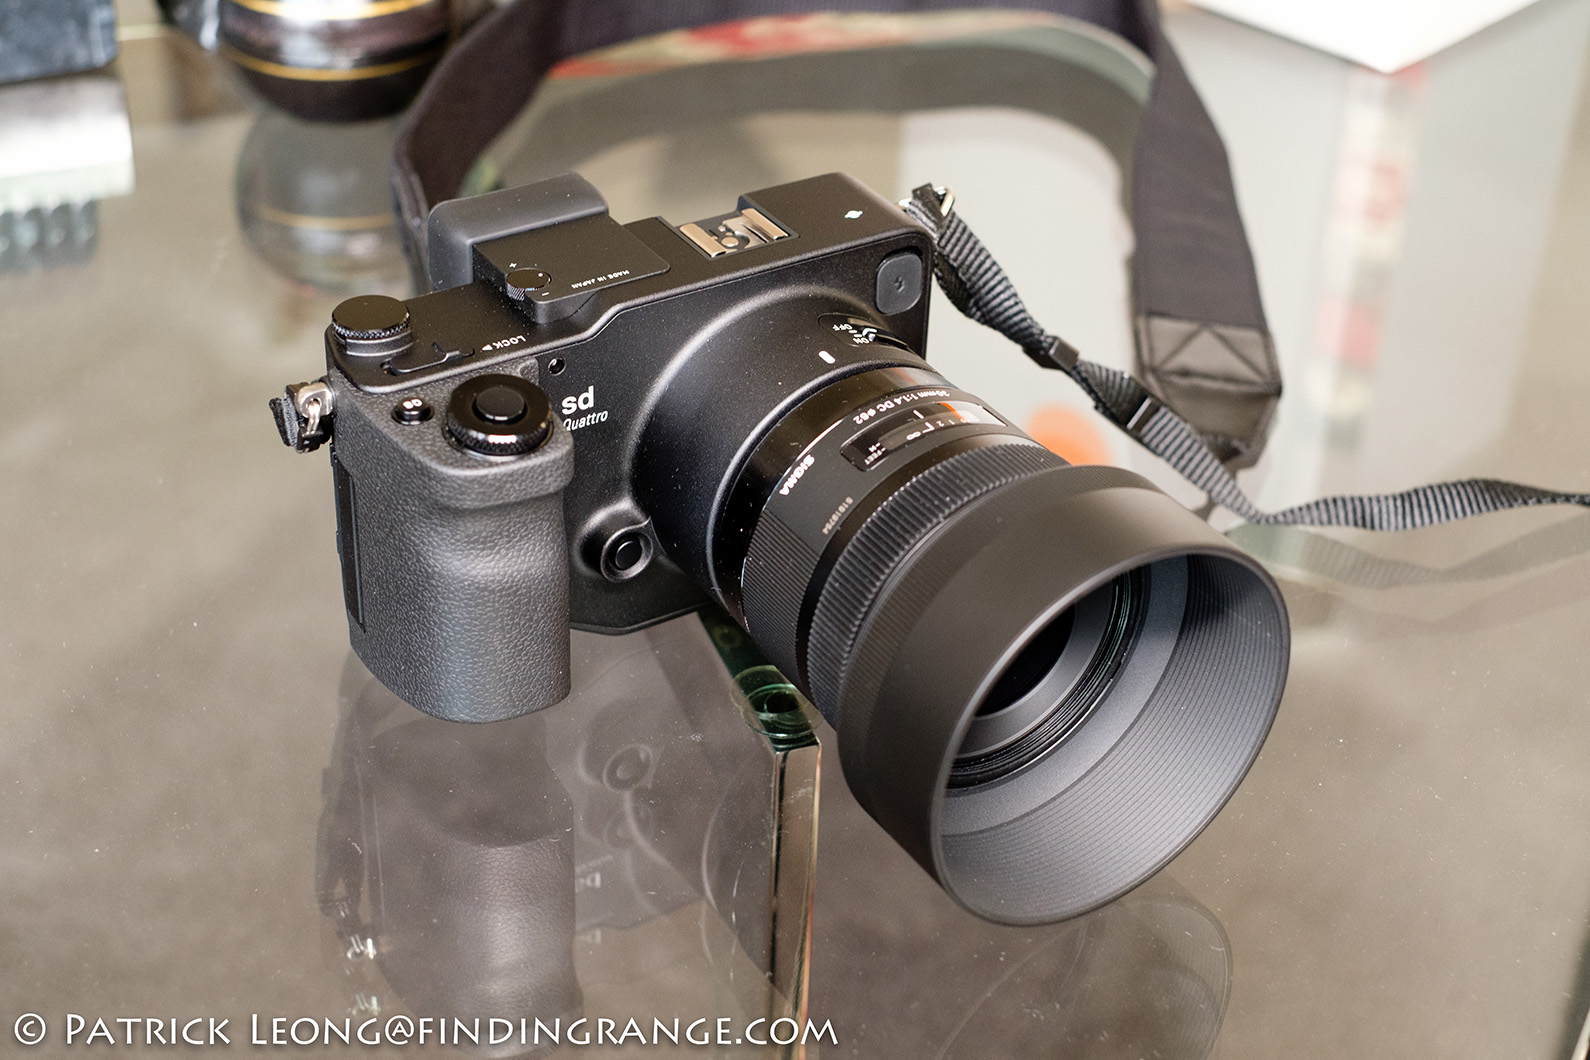 sigma-sd-quattro-30mm-f1-4-art-lens-review-first-impressions-4